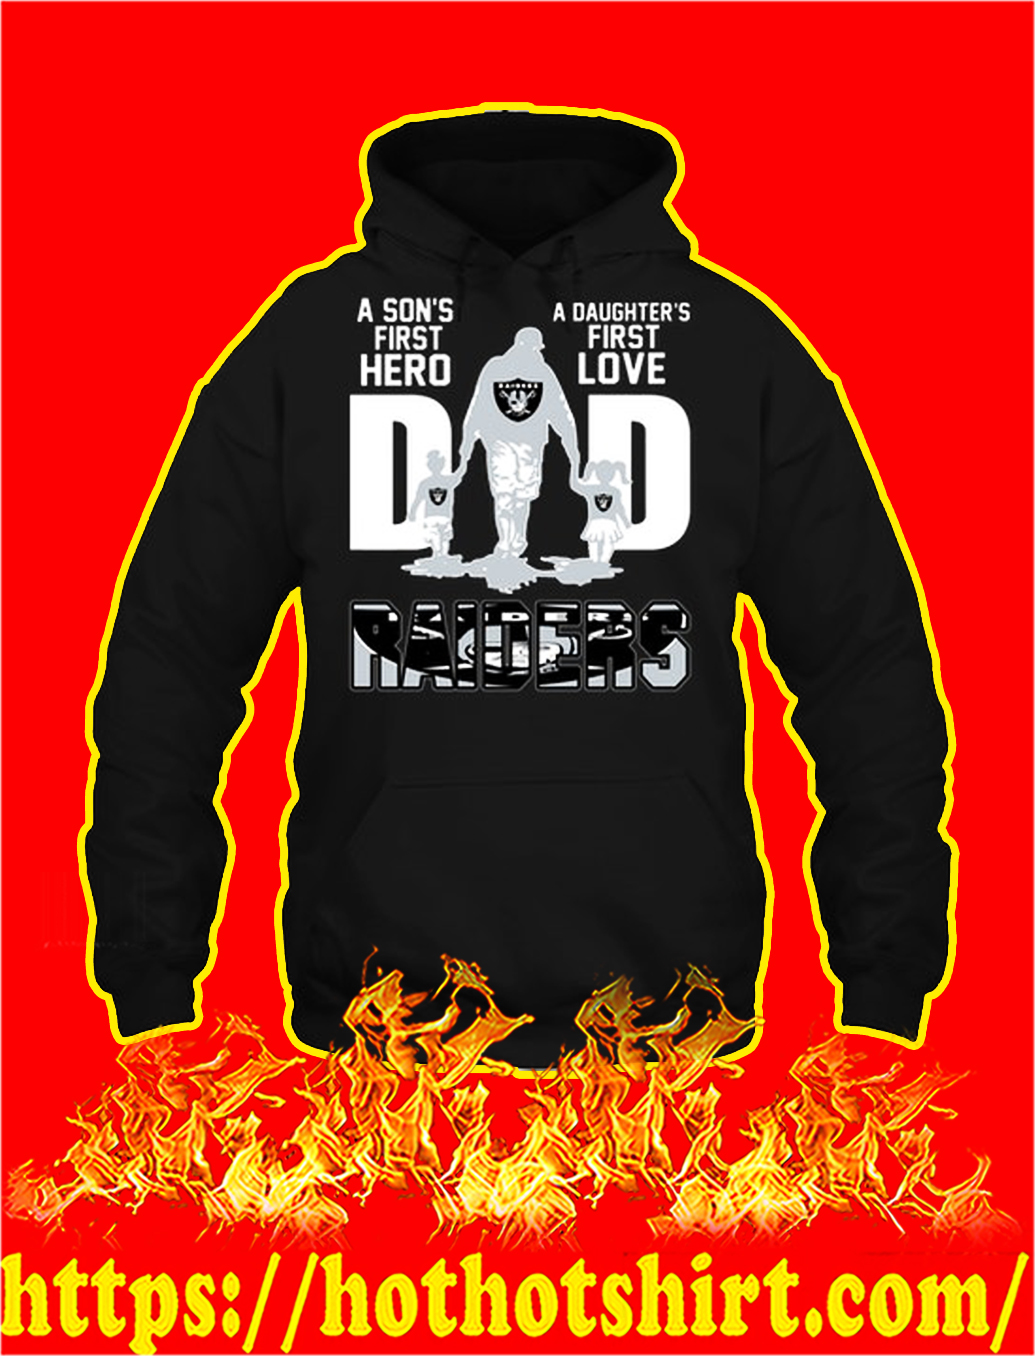 Raiders tide dad a son's first hero a daughter's first love hoodie